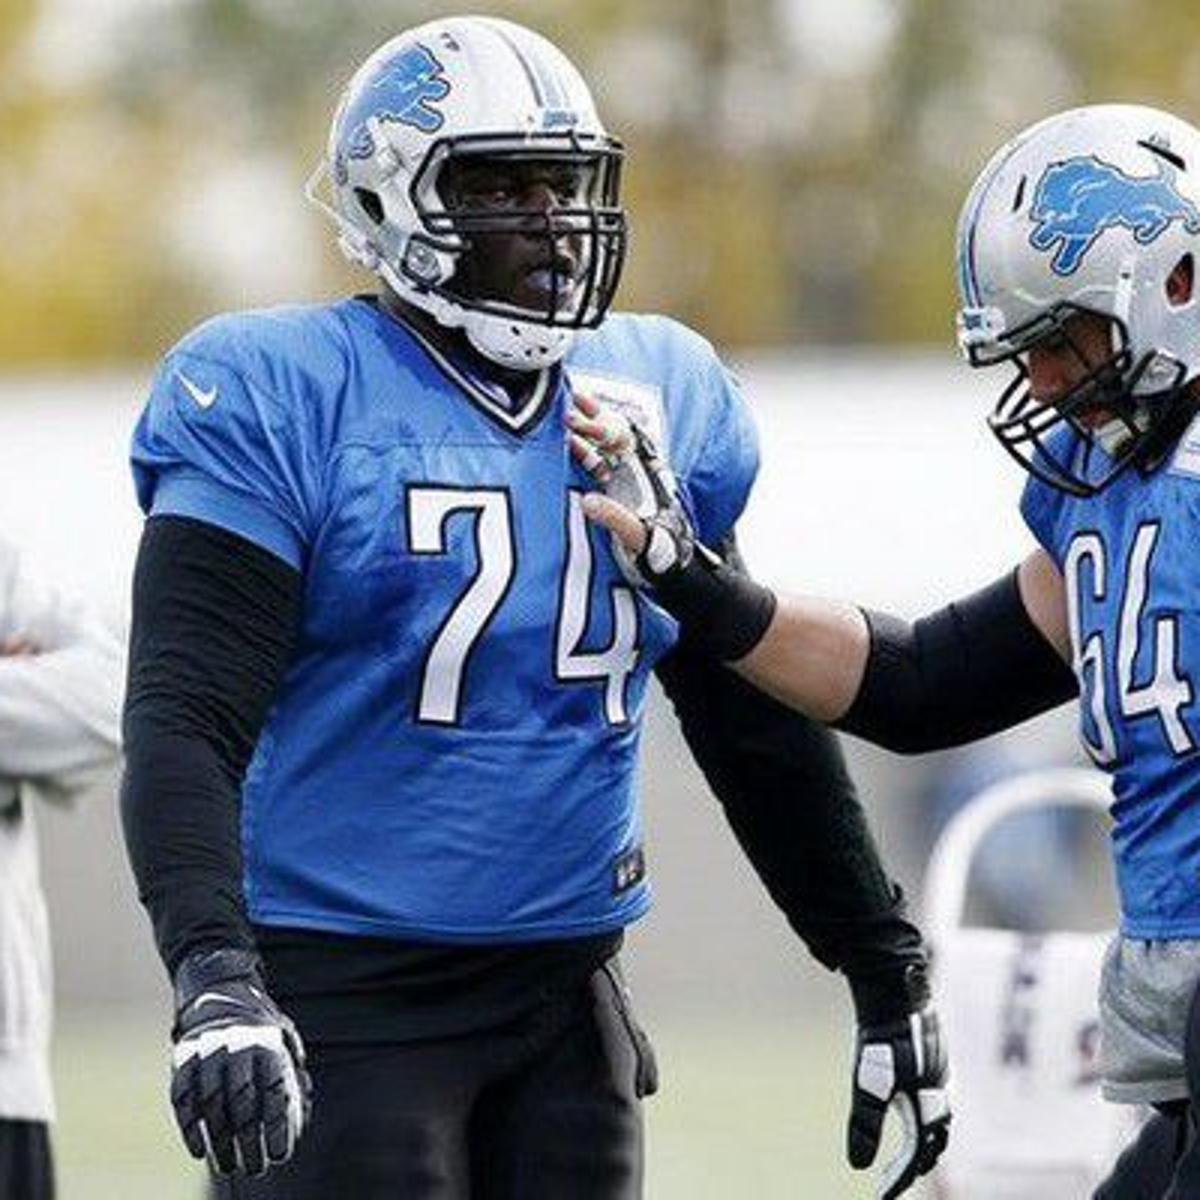 online store 4744c 2b05e Saints to sign offensive lineman Michael Ola after tryout ...